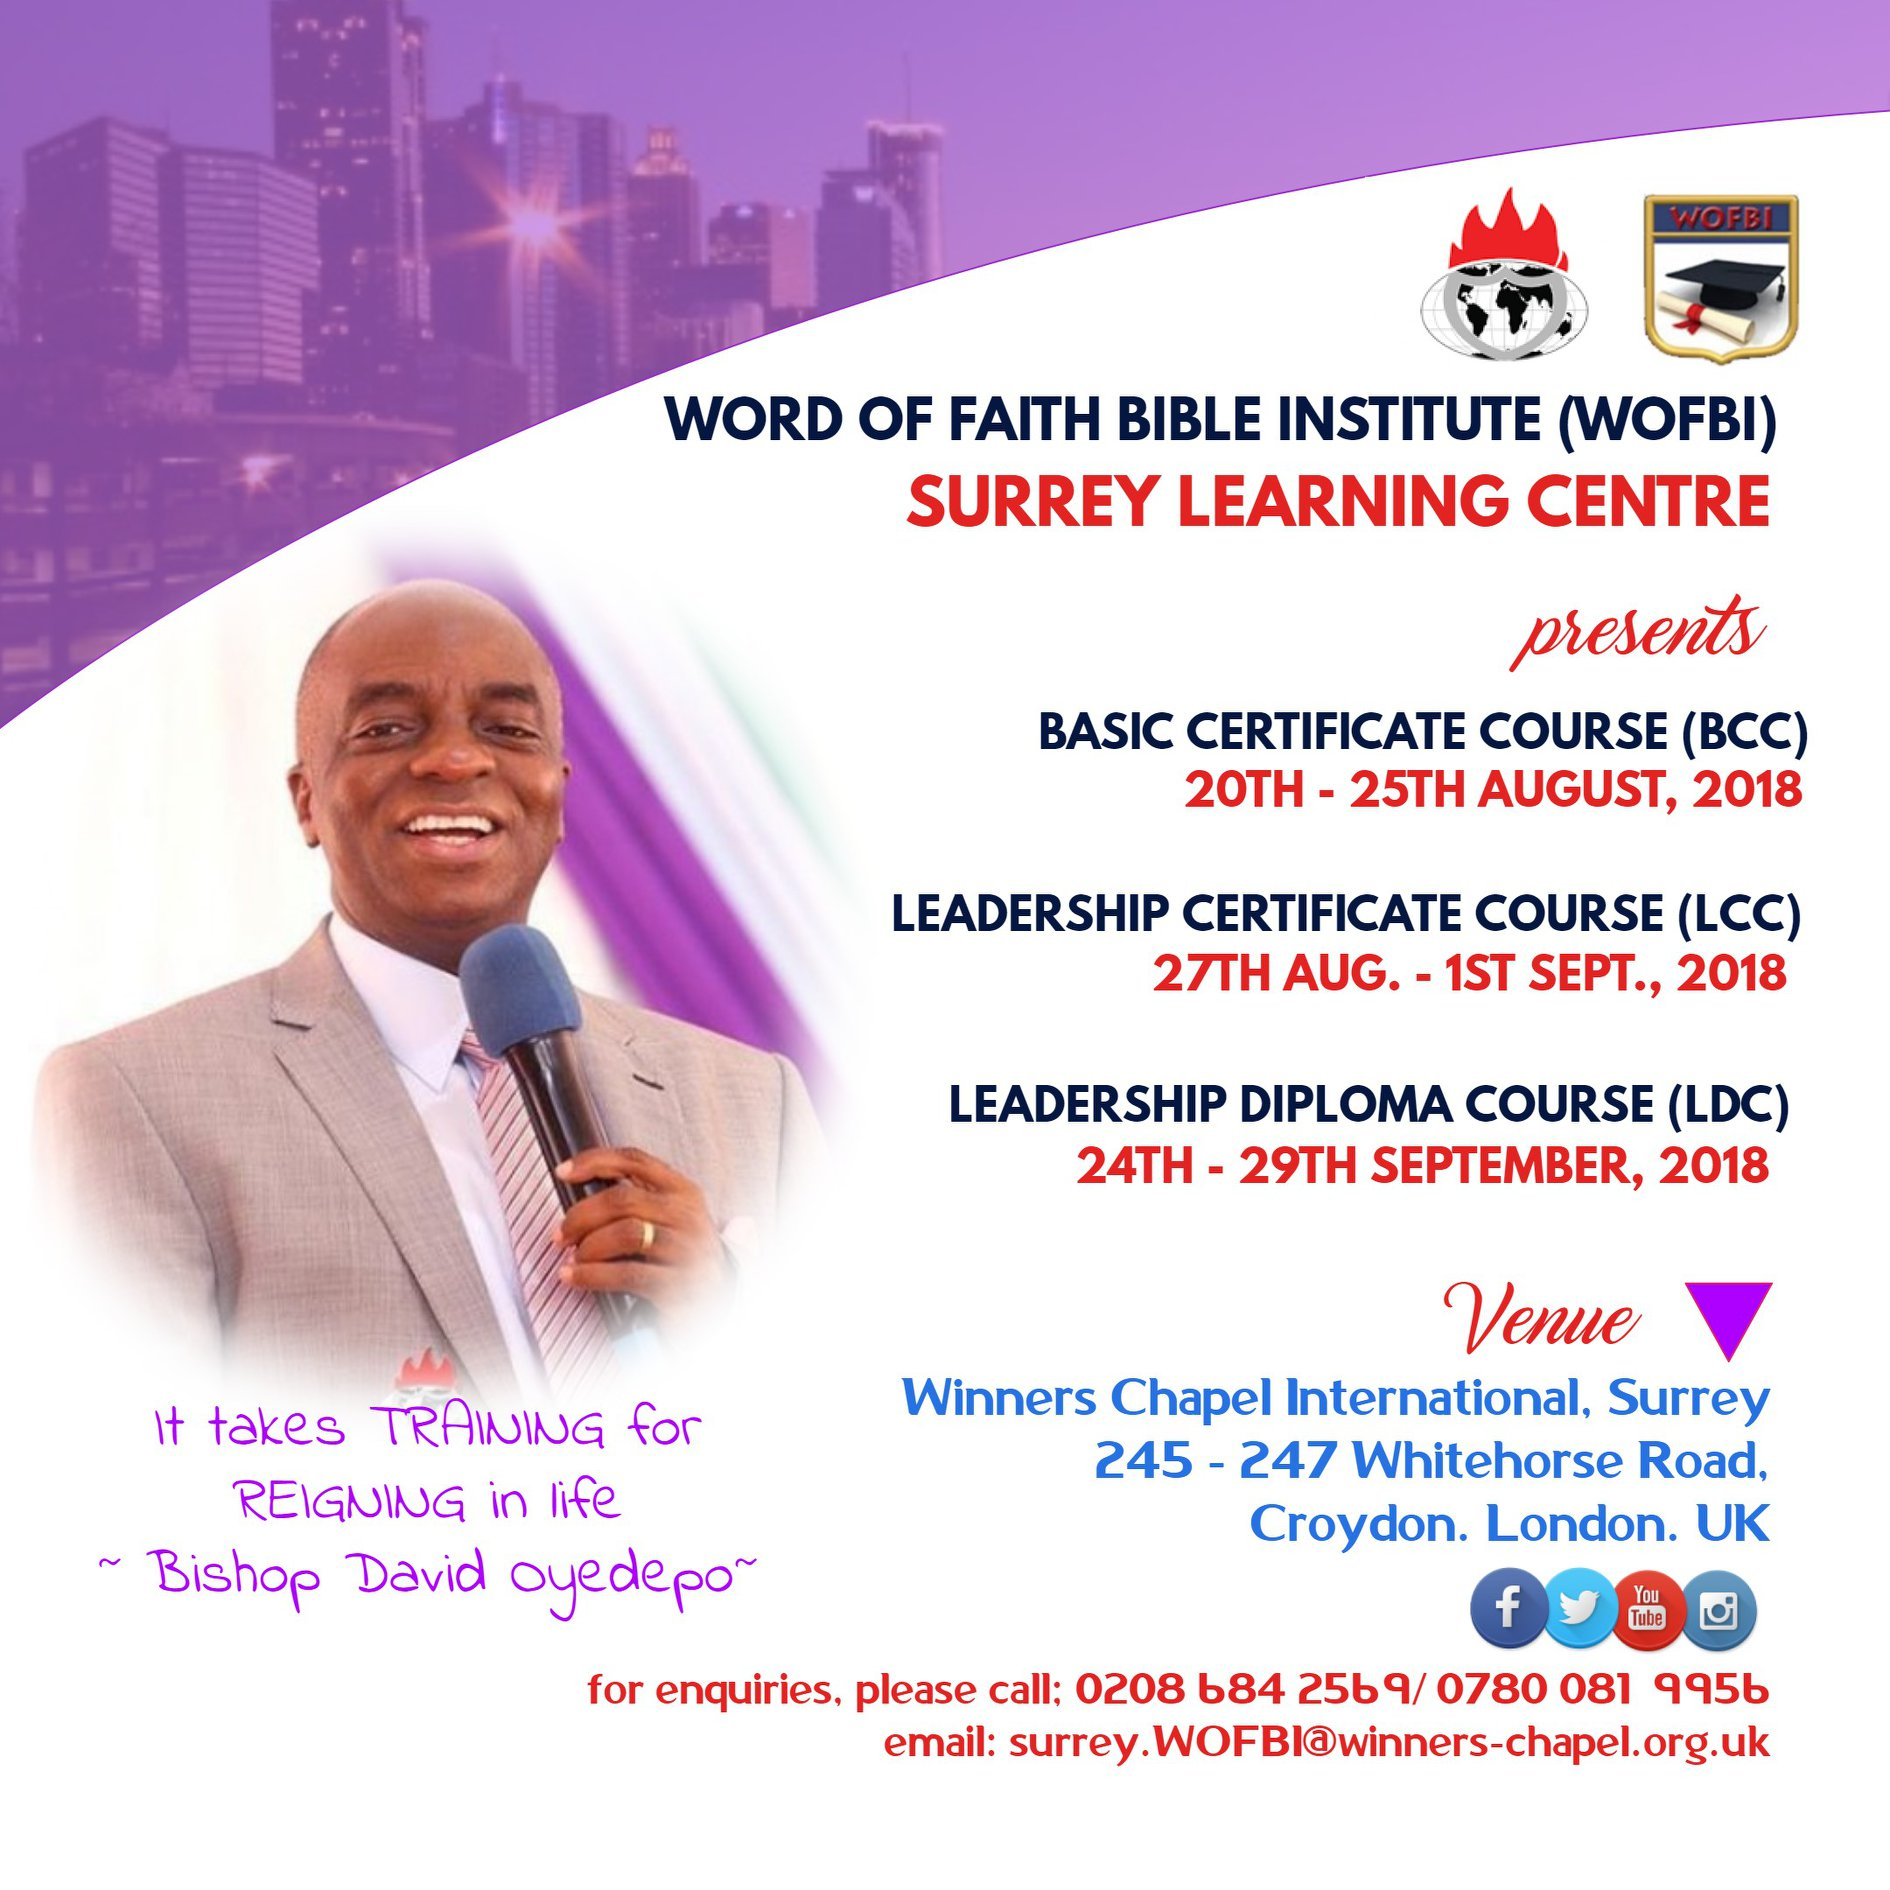 Winners Chapel Surrey | WORD OF FAITH BIBLE INSTITUTE (WOFBI)